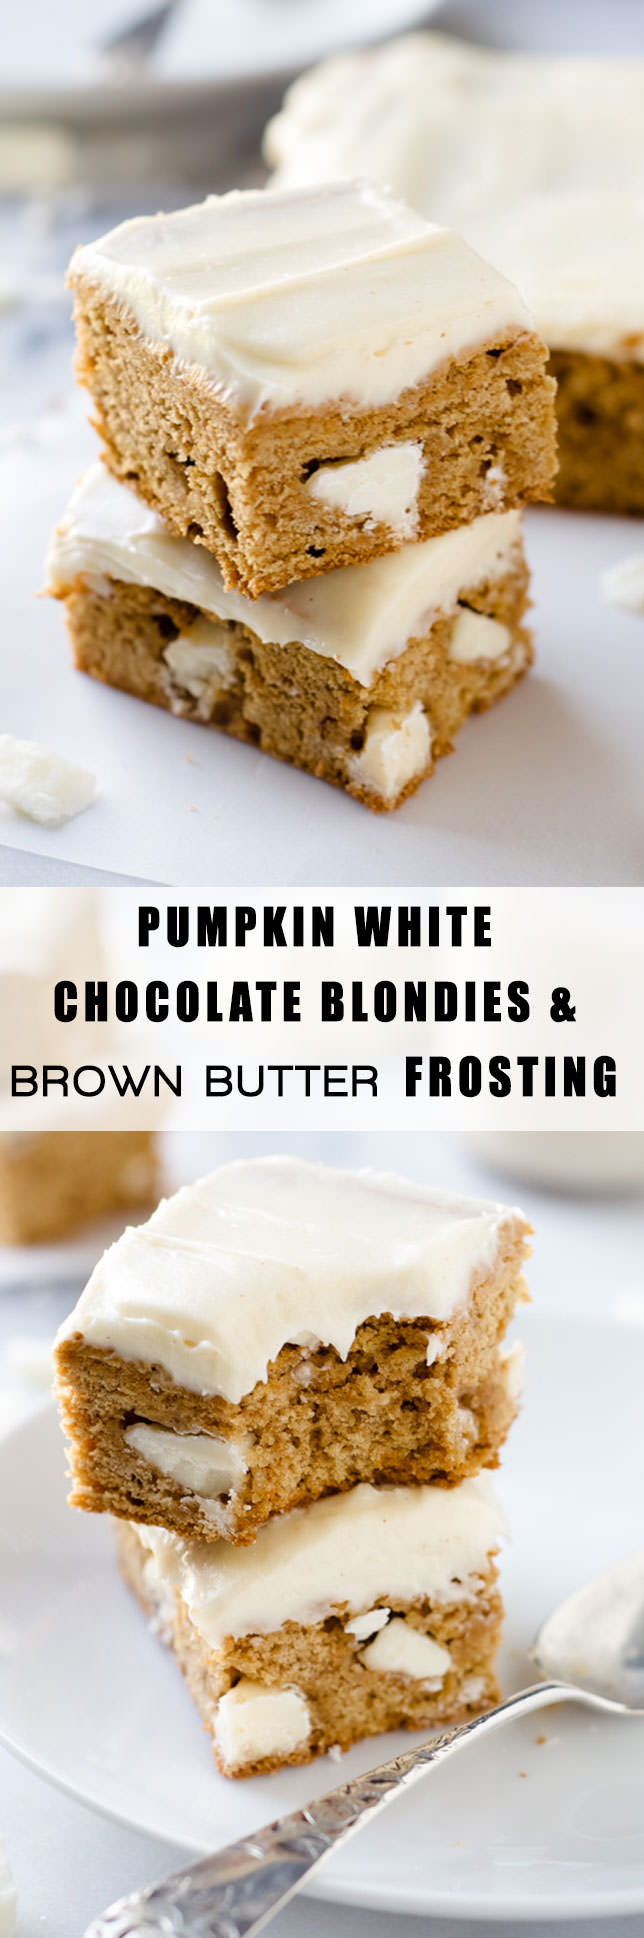 Pumpkin Spice White Chocolate Blondies